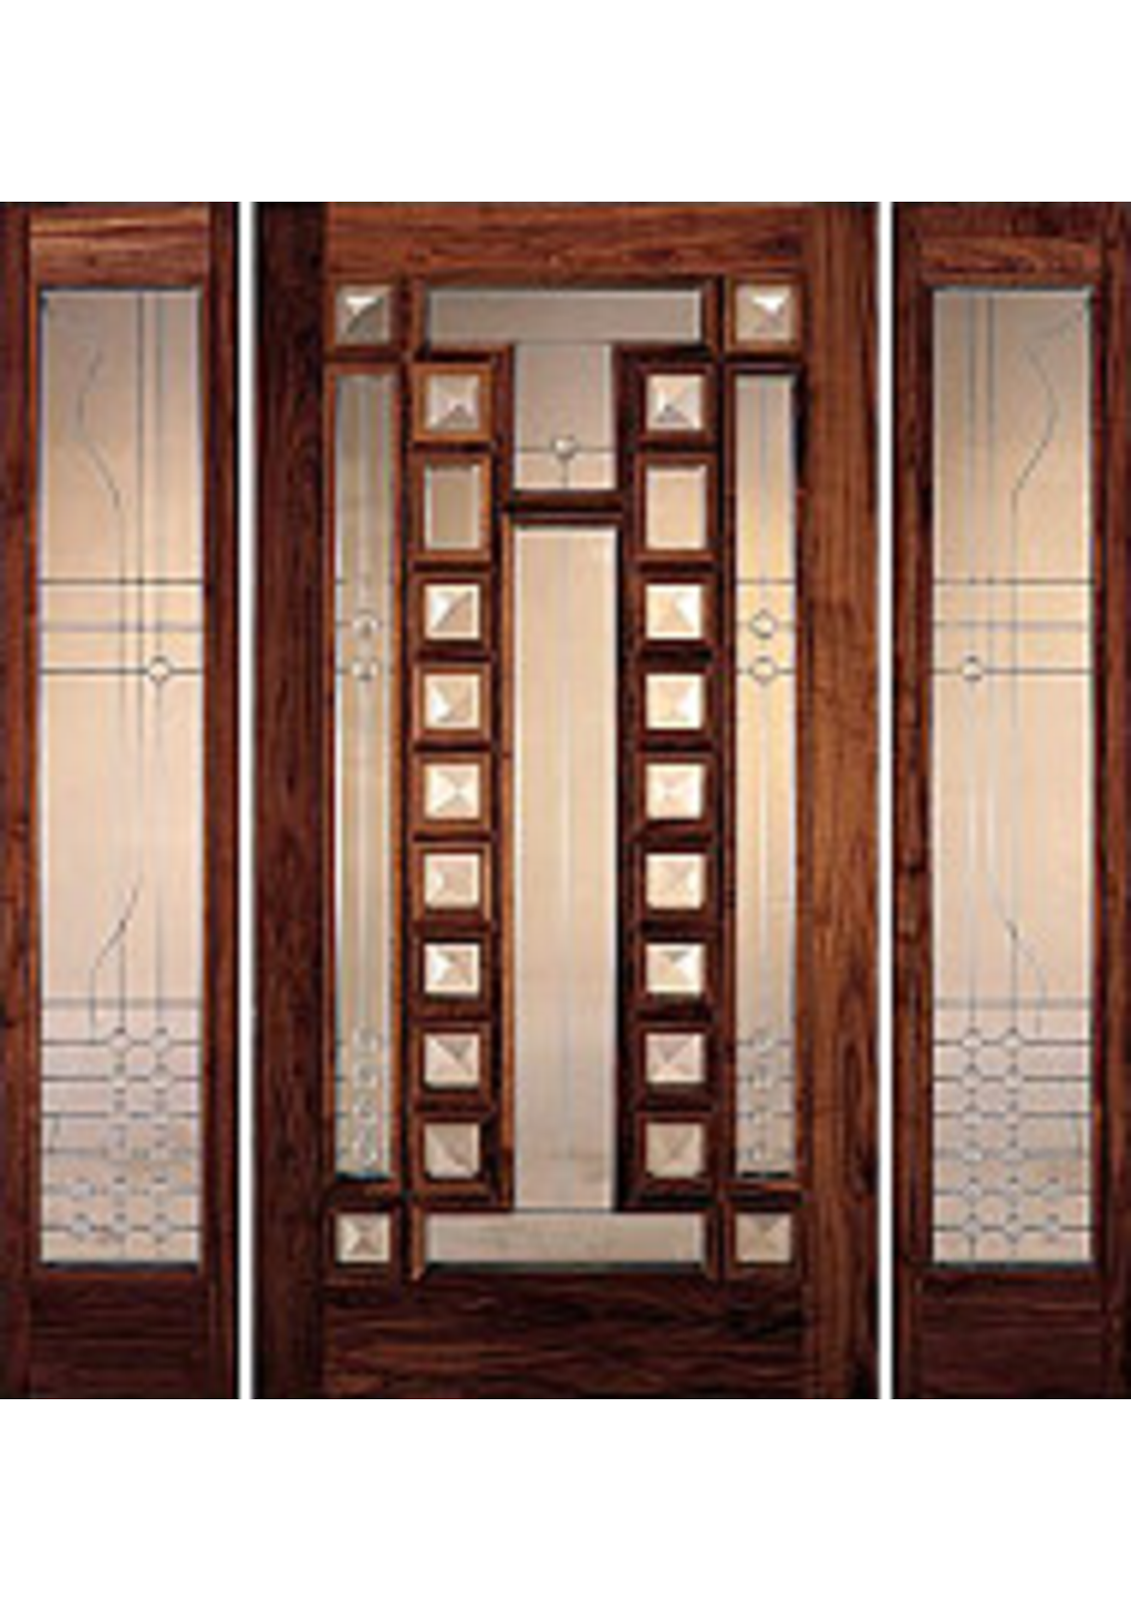 Foundation dezin decor doors design for Door pattern design